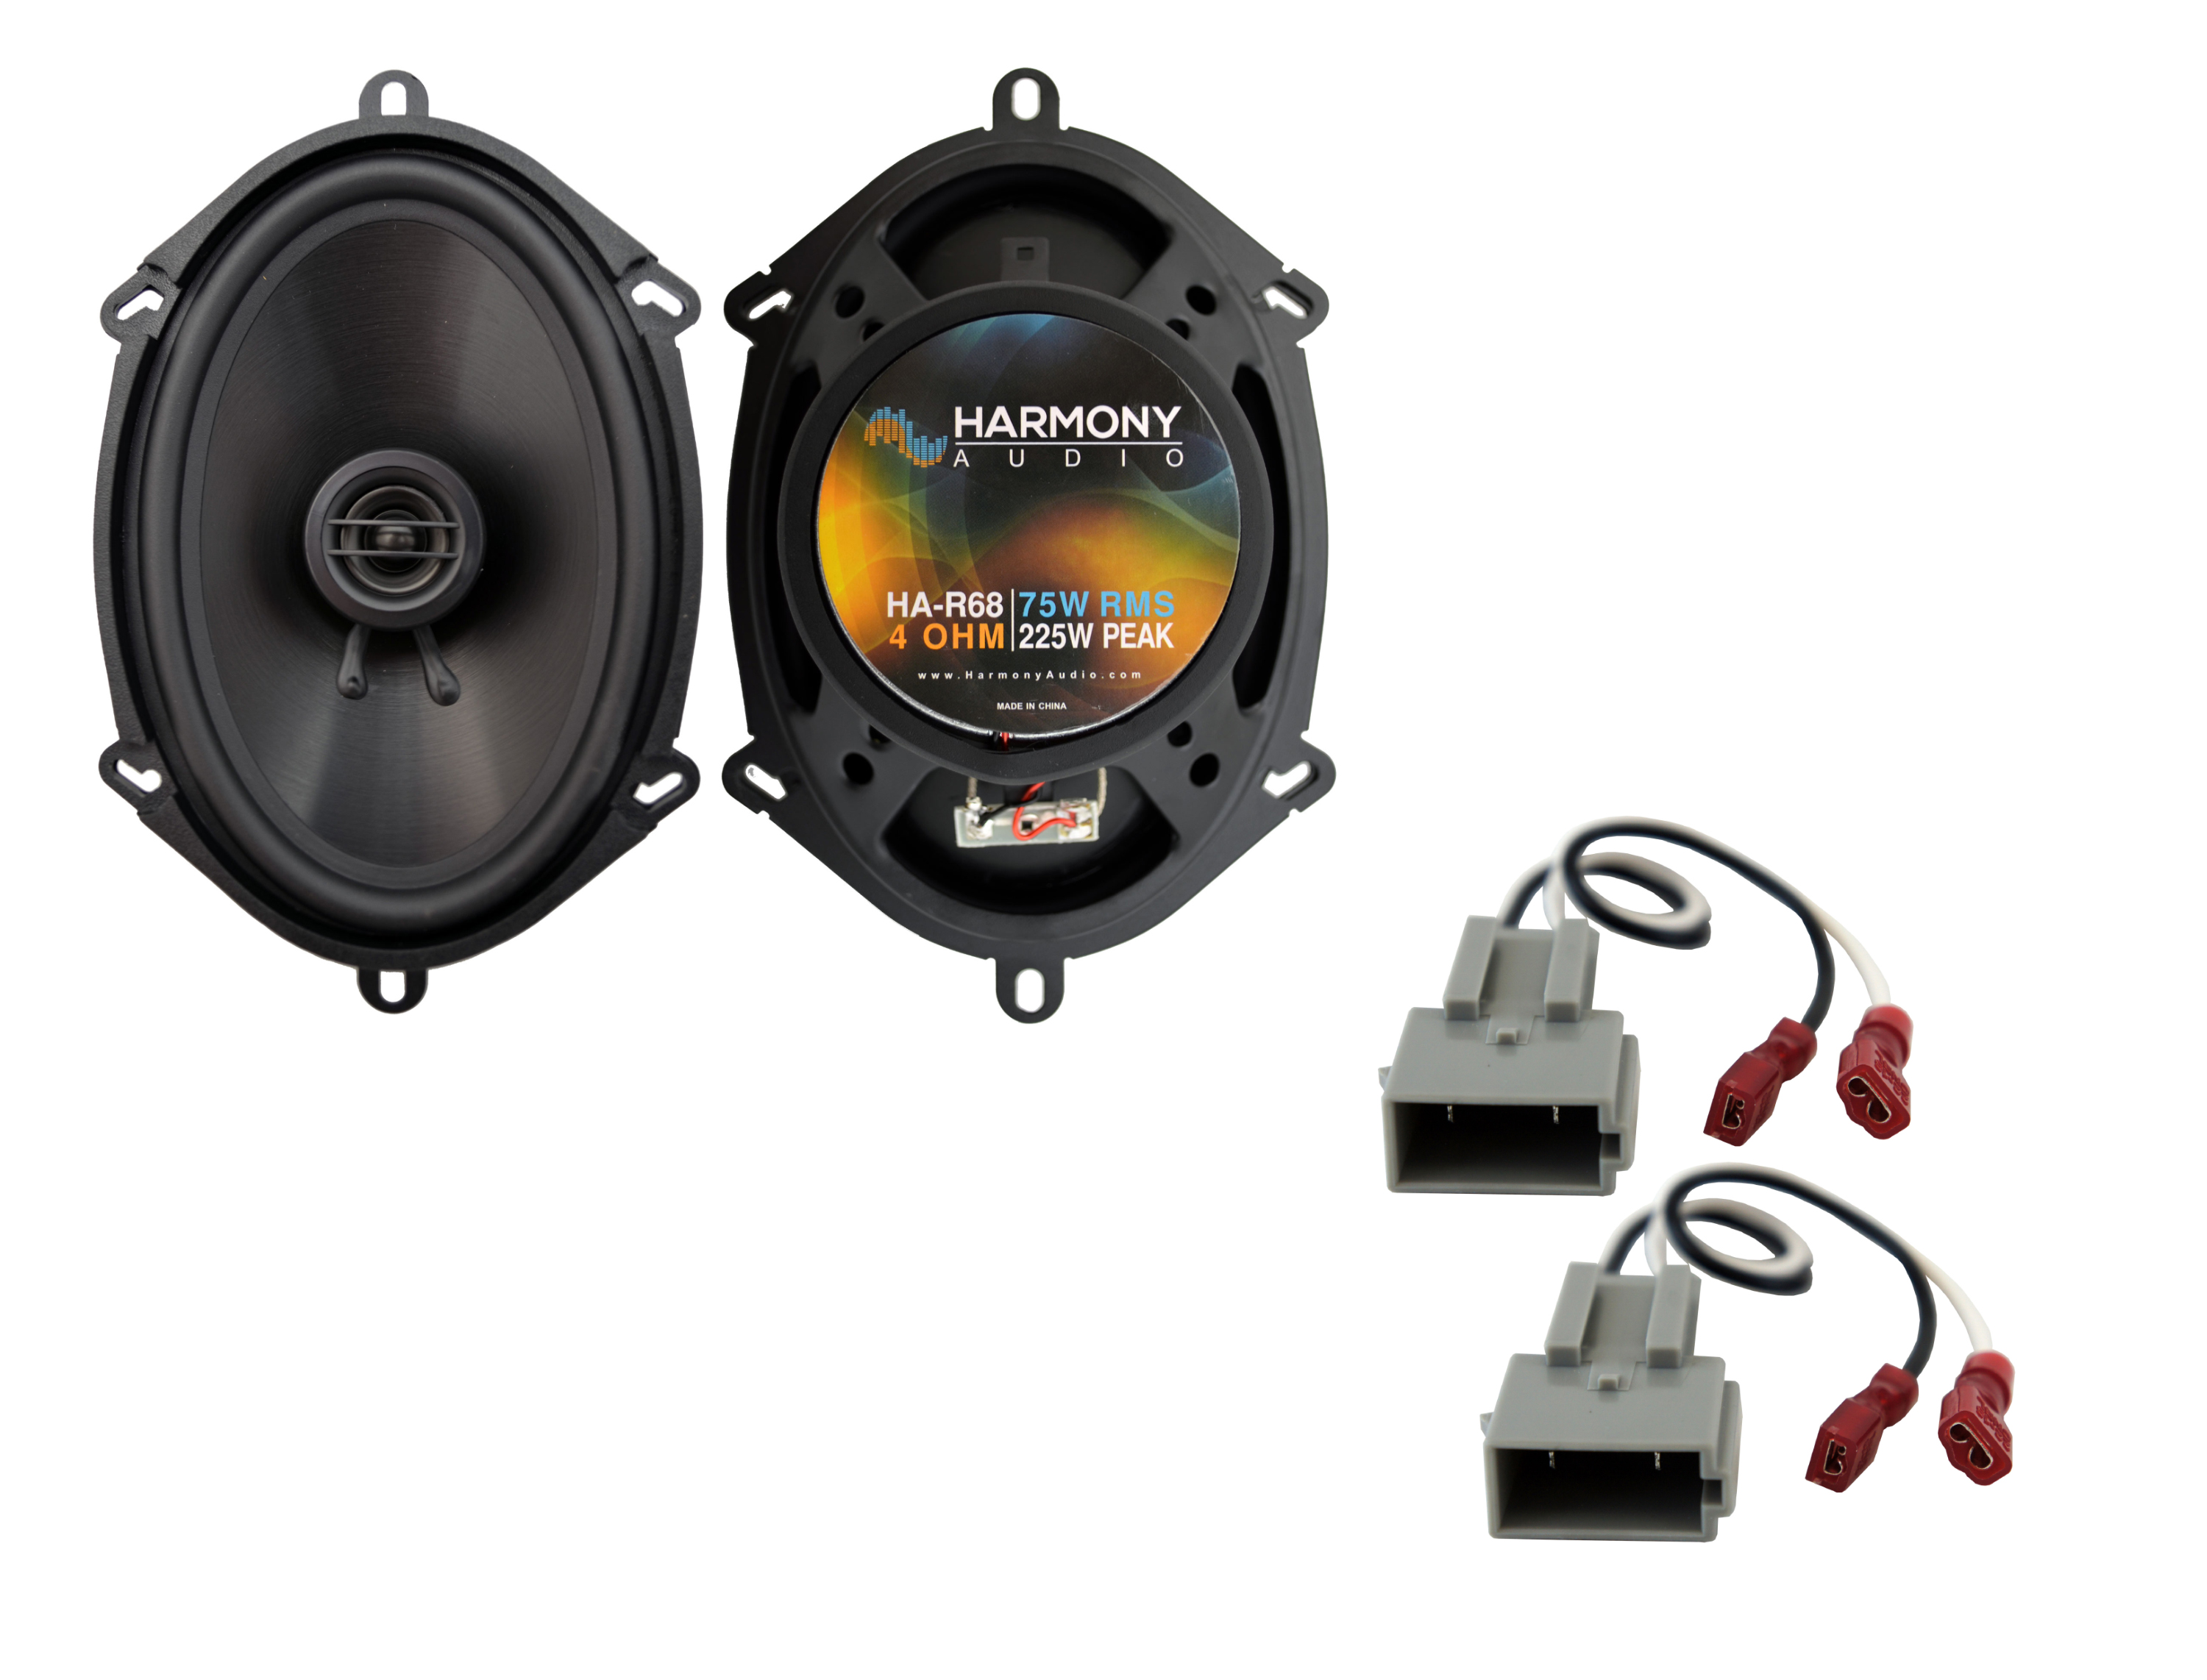 Harmony Audio Compatible with 1997-2013 Ford Econoline Full Size Van HA-R68 New Front Door Replacement 225W Speakers And HA-725512 Factory Speaker Replacement Harness